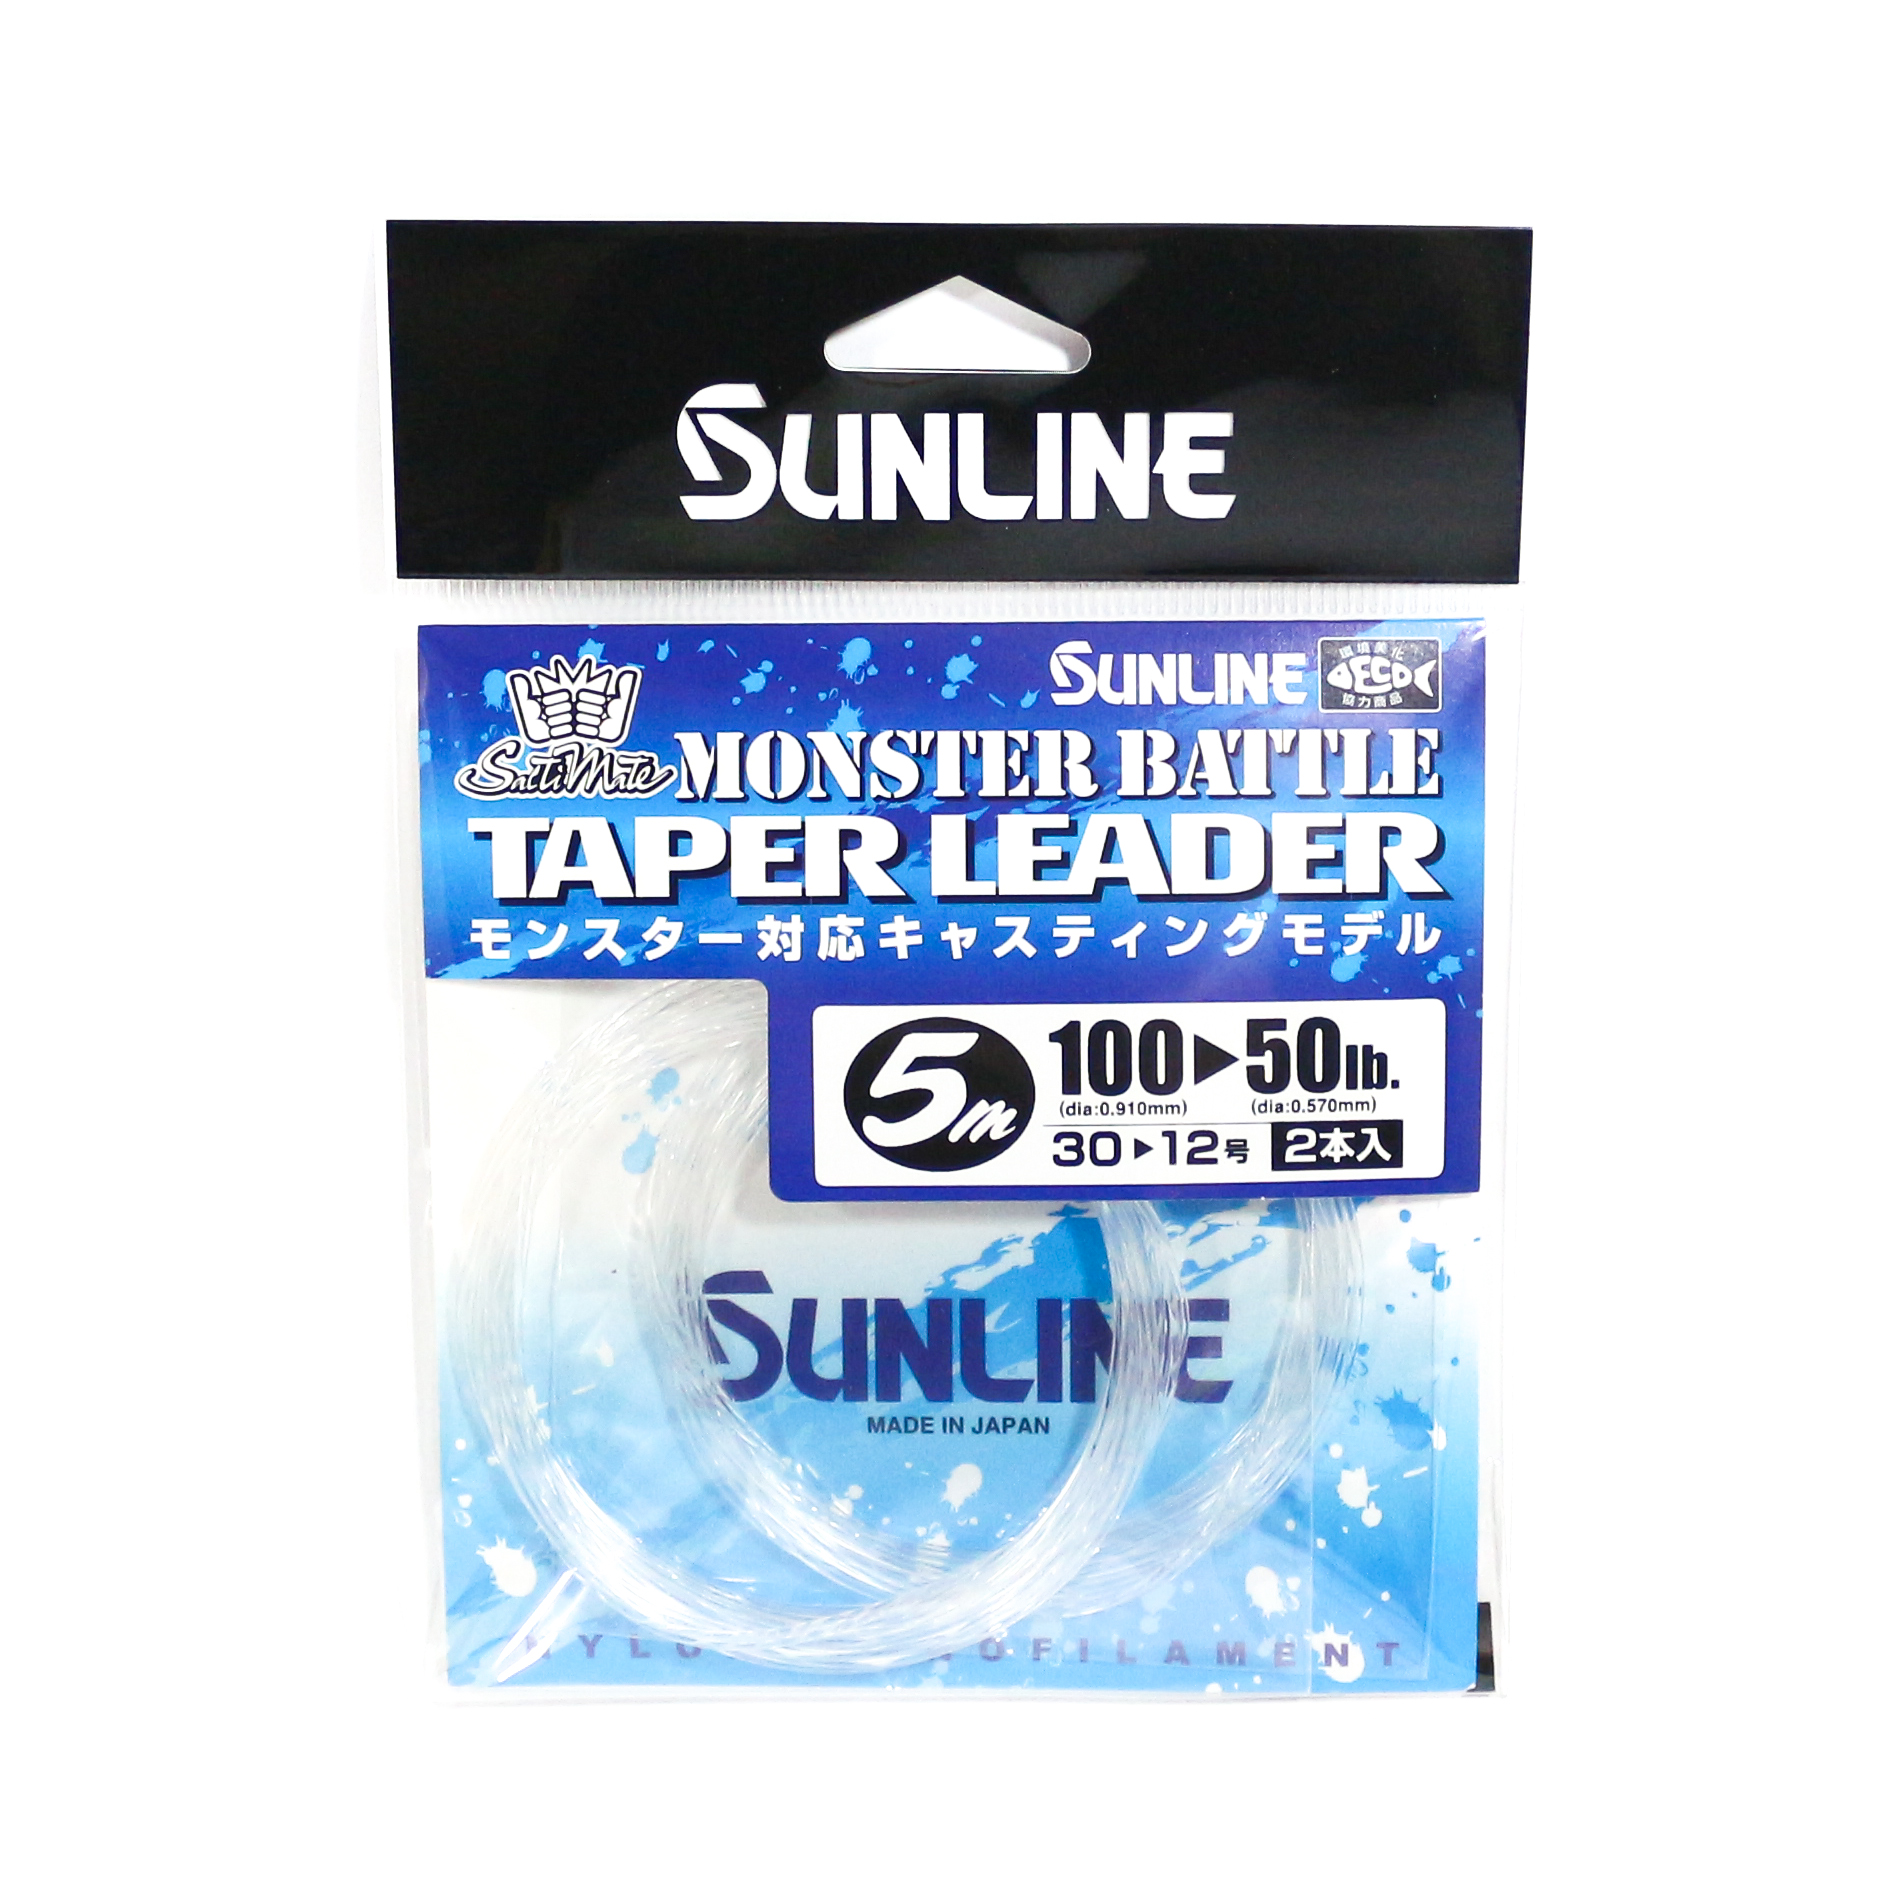 Sunline Taper Leader Monster Battle Nylon Line 5m , 50-100 lb (8645)